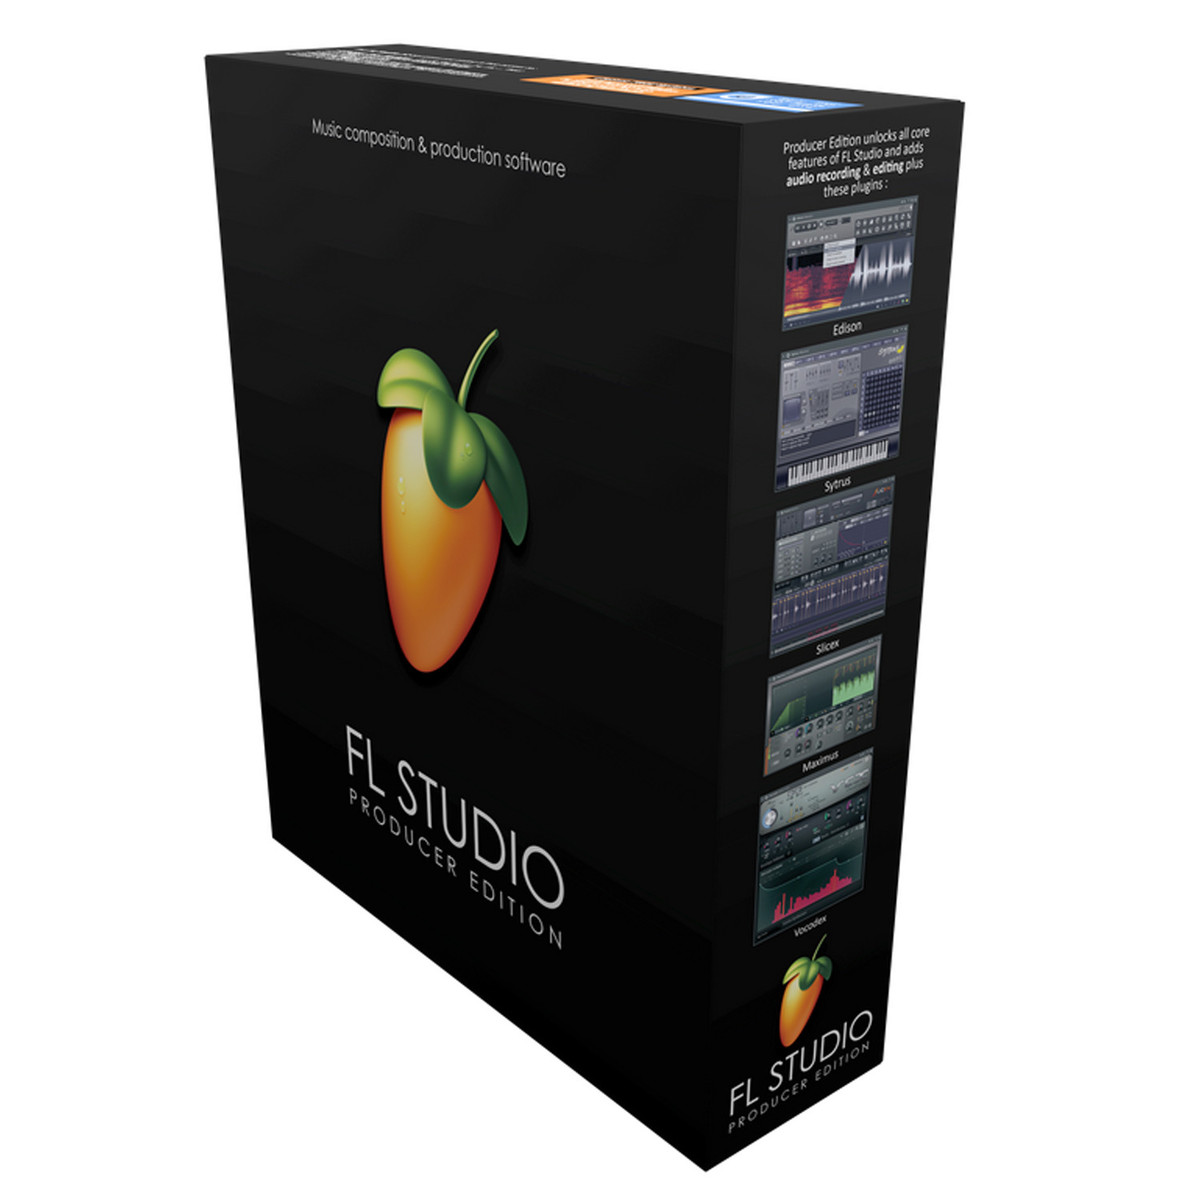 Image of FL Studio 12 Producer Edition Sequencer and Loop Generator